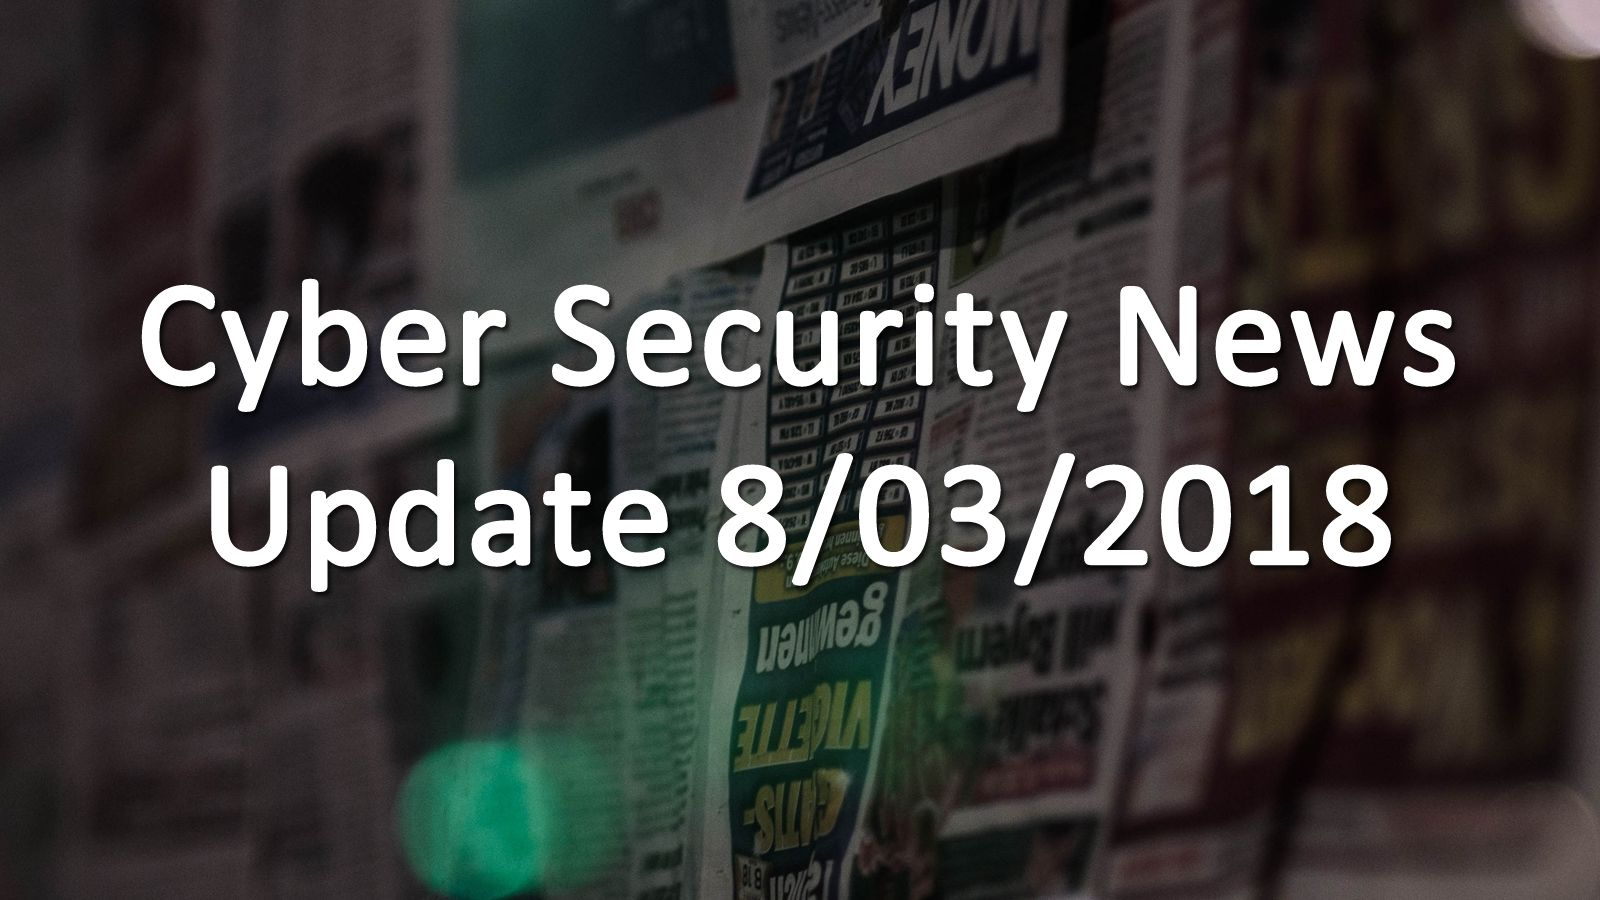 Cyber Security News Update 8 3 2018 Askcybersecurity Com Cyber Security Security Cyber